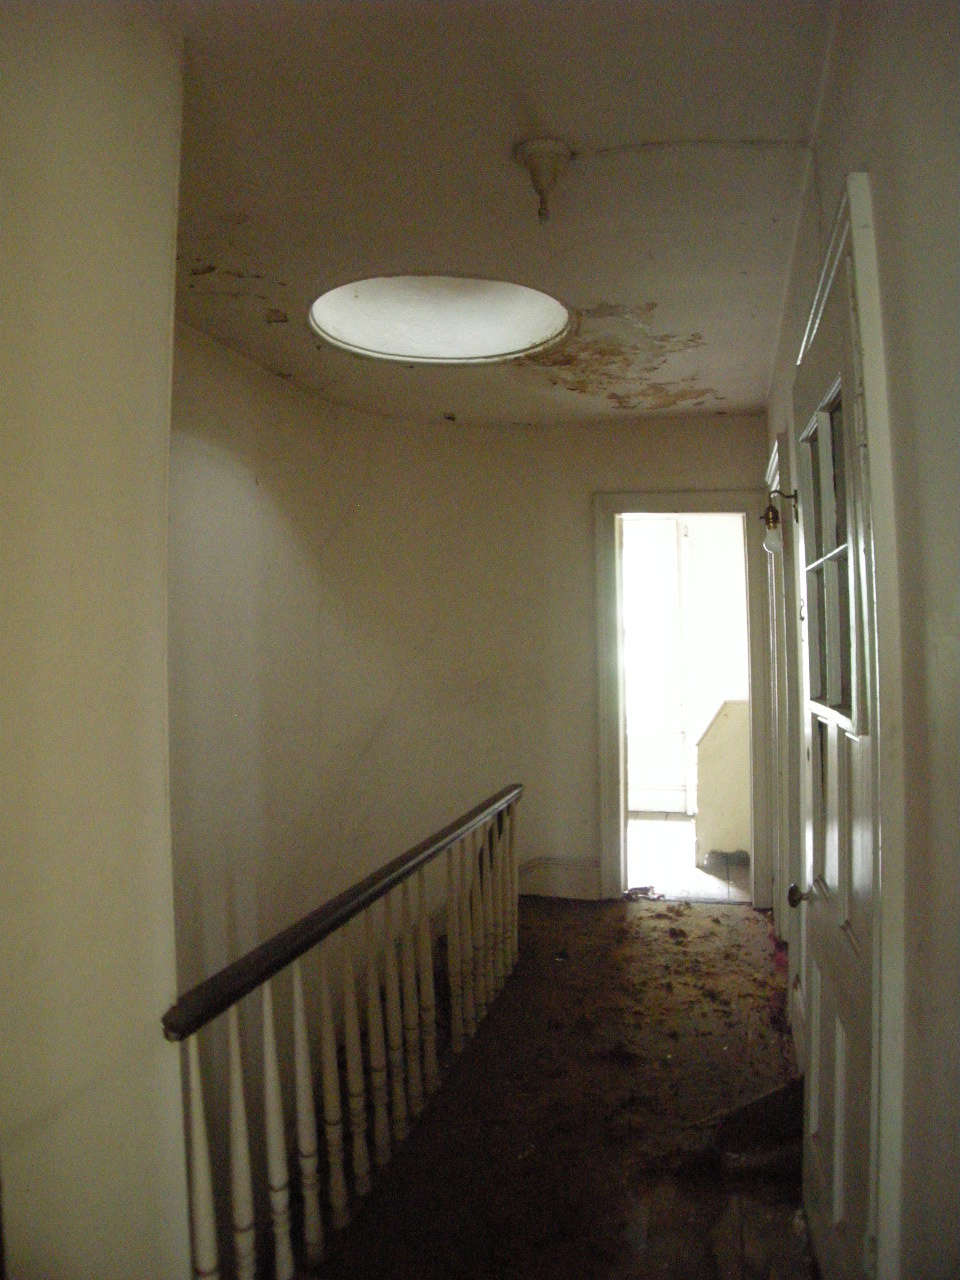 The top floor hall with skylight and banister that's still in use.